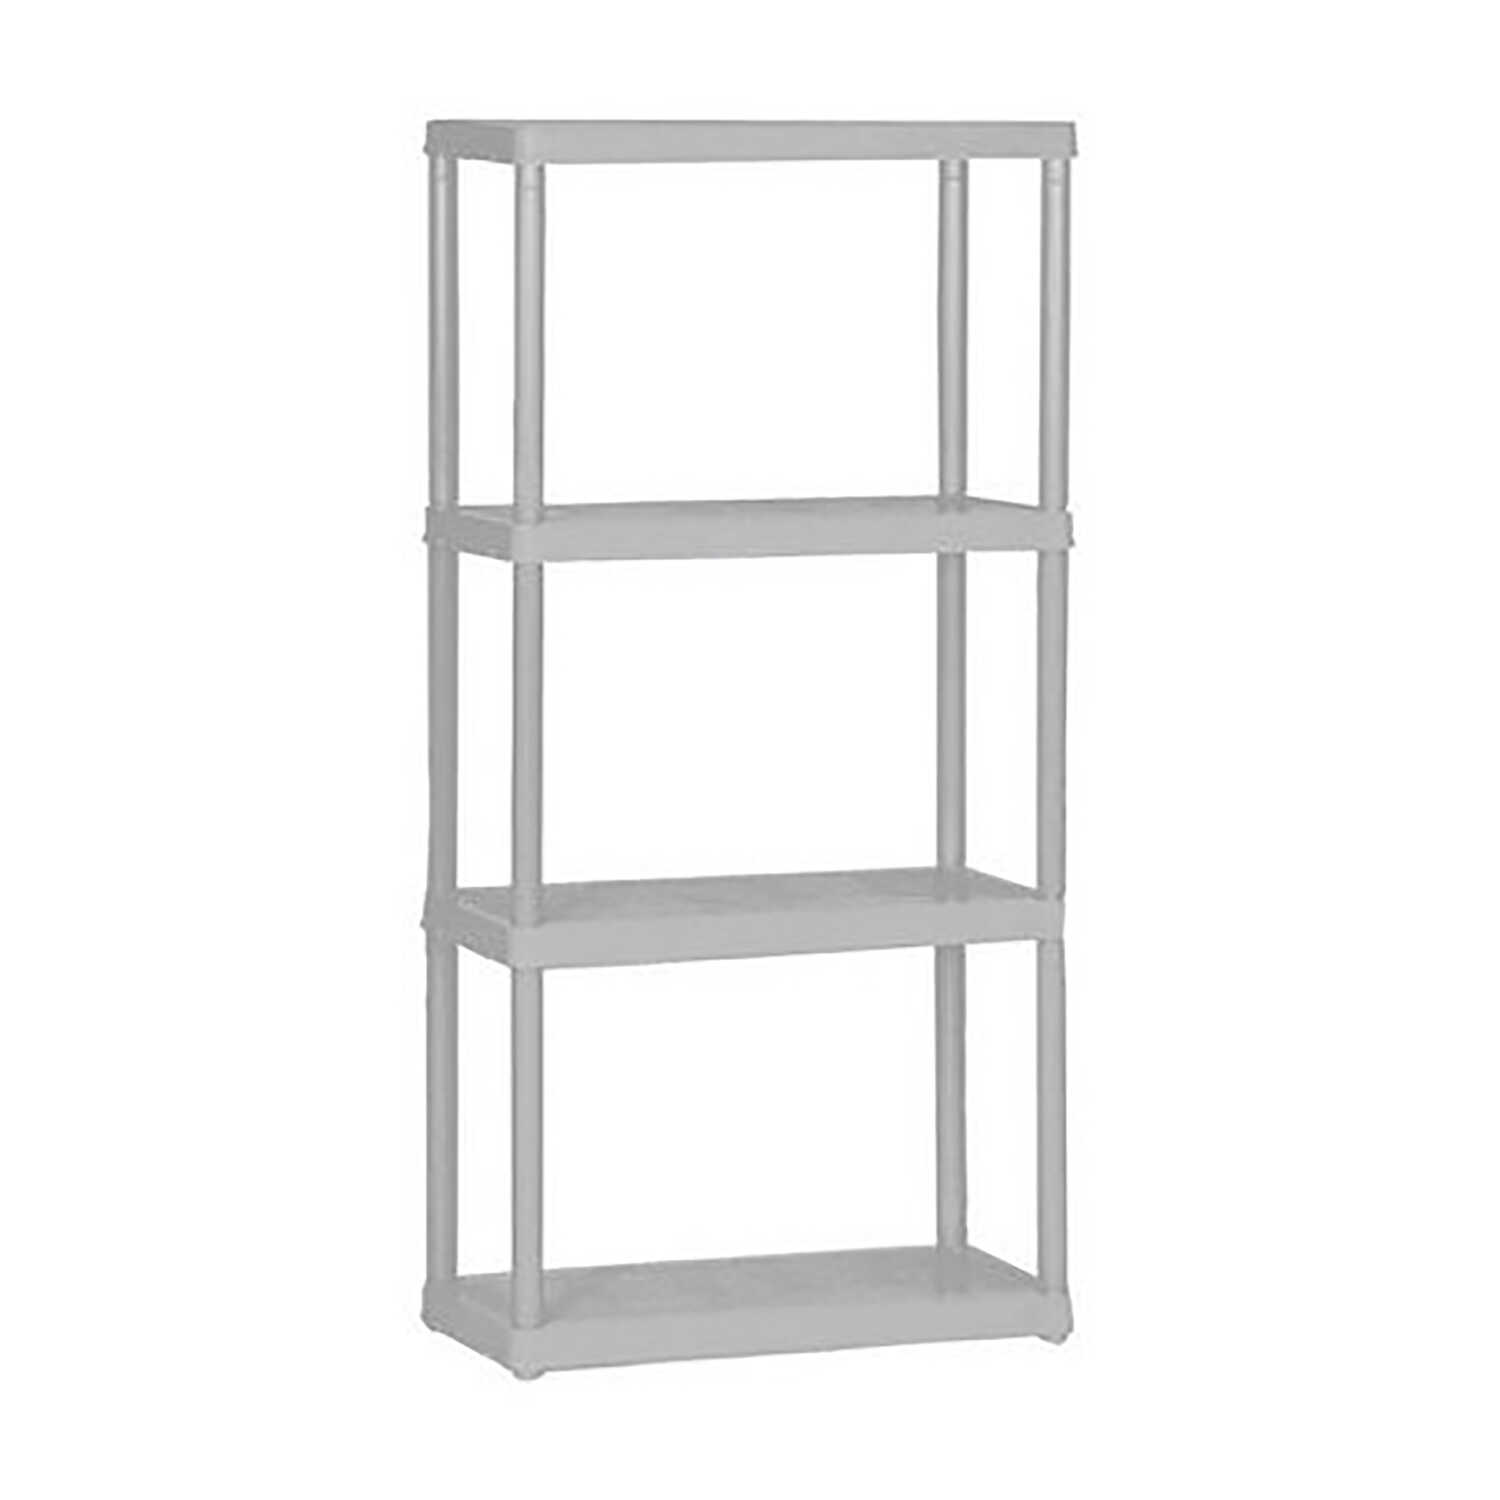 Maxit  48 in. H x 24 in. W x 12 in. D Resin  Shelving Unit